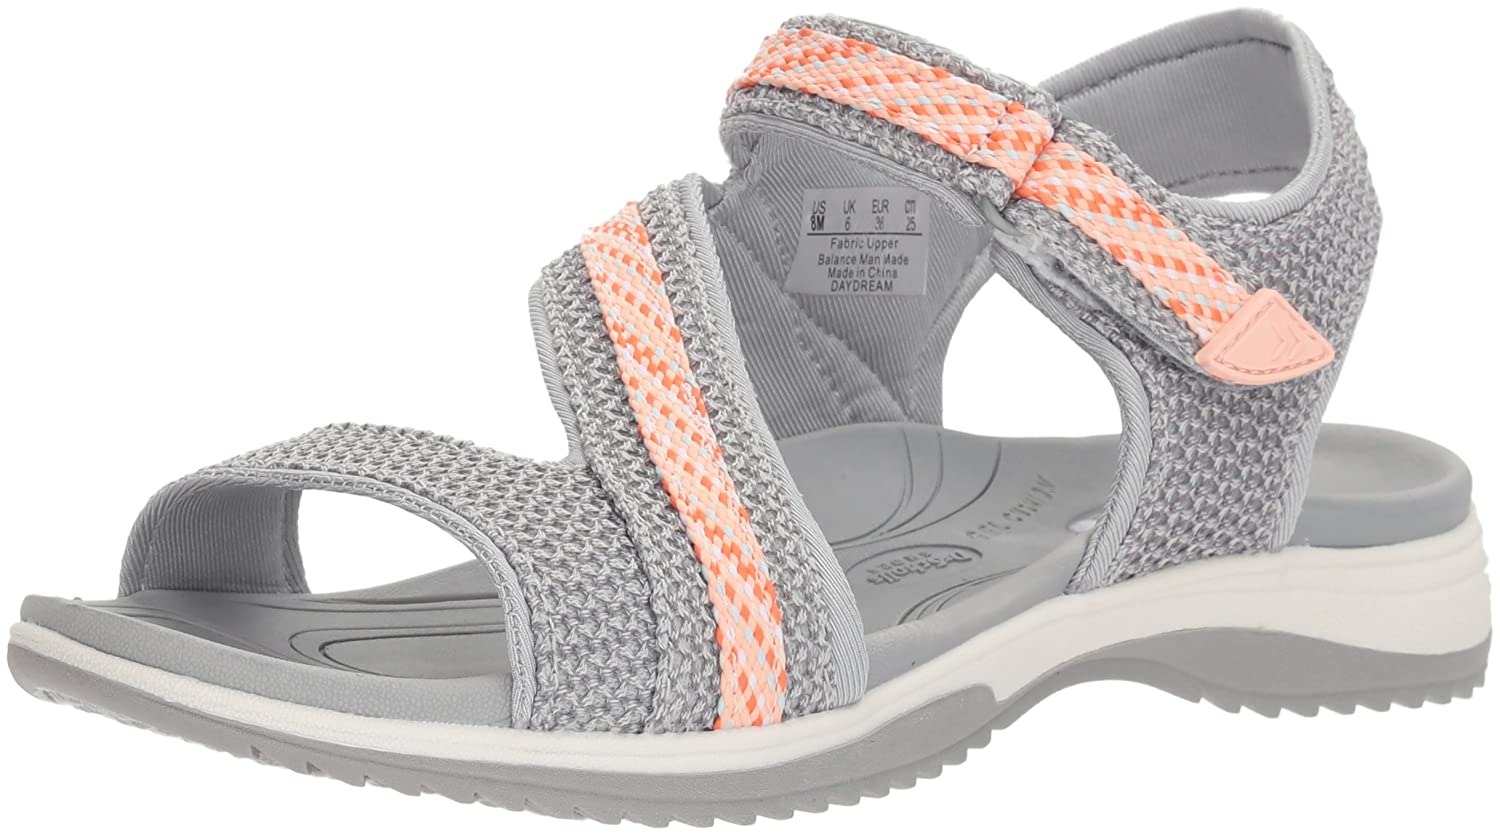 Dr. Scholl's Shoes Women's Daydream Slide Sandal B0767T3XWZ 11 B(M) US|Frost Grey Mesh